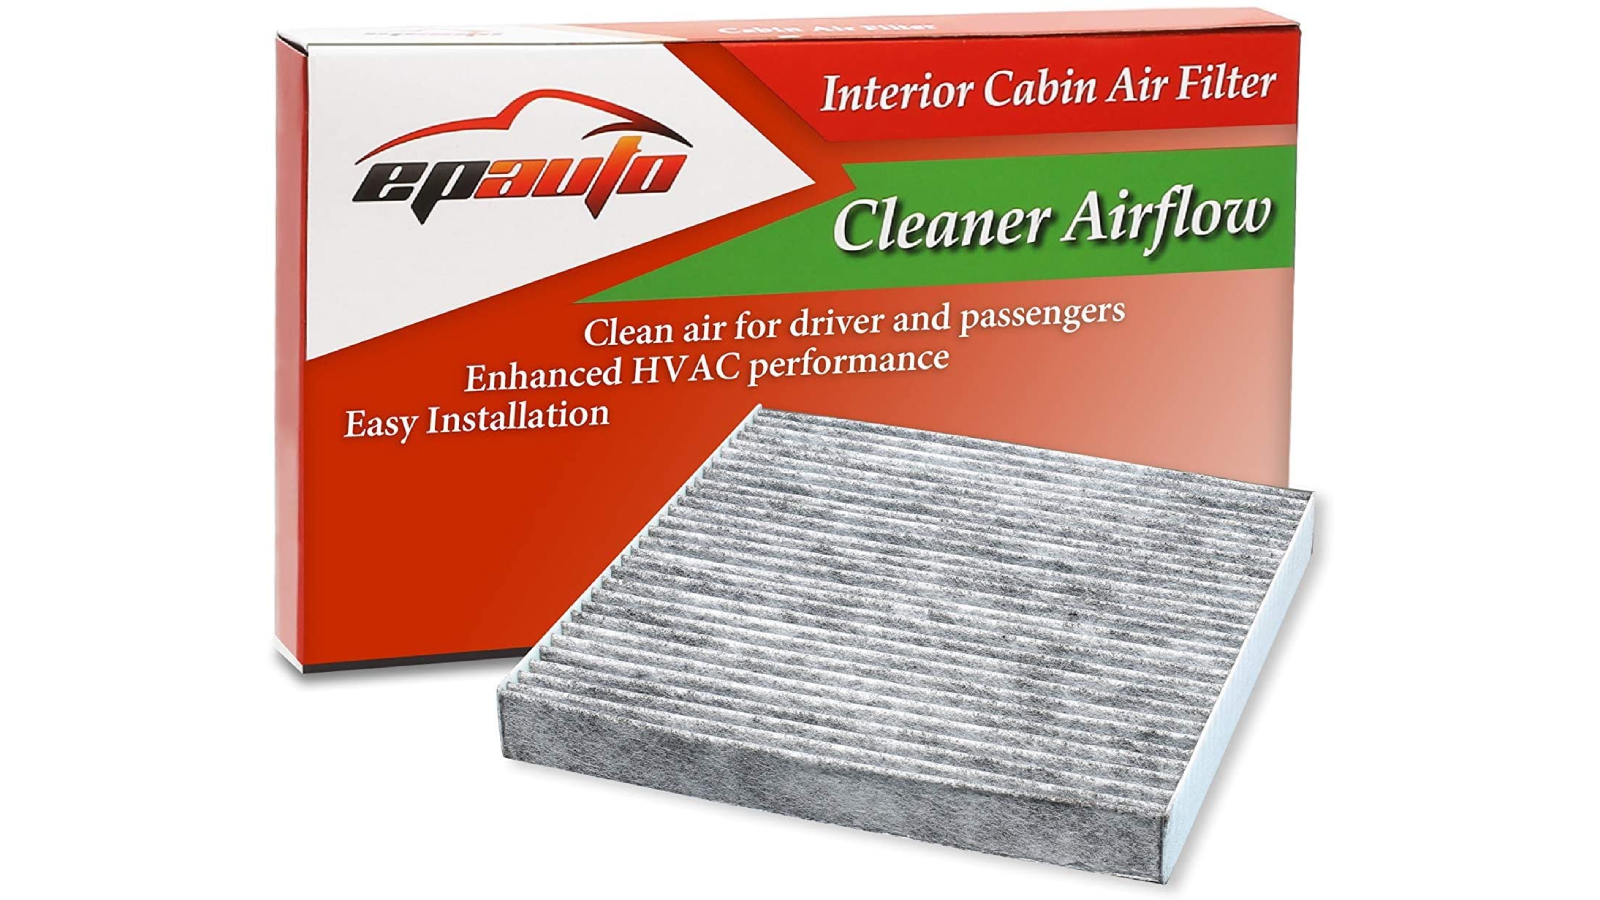 Image of product packaging and a car air filter on display in front.